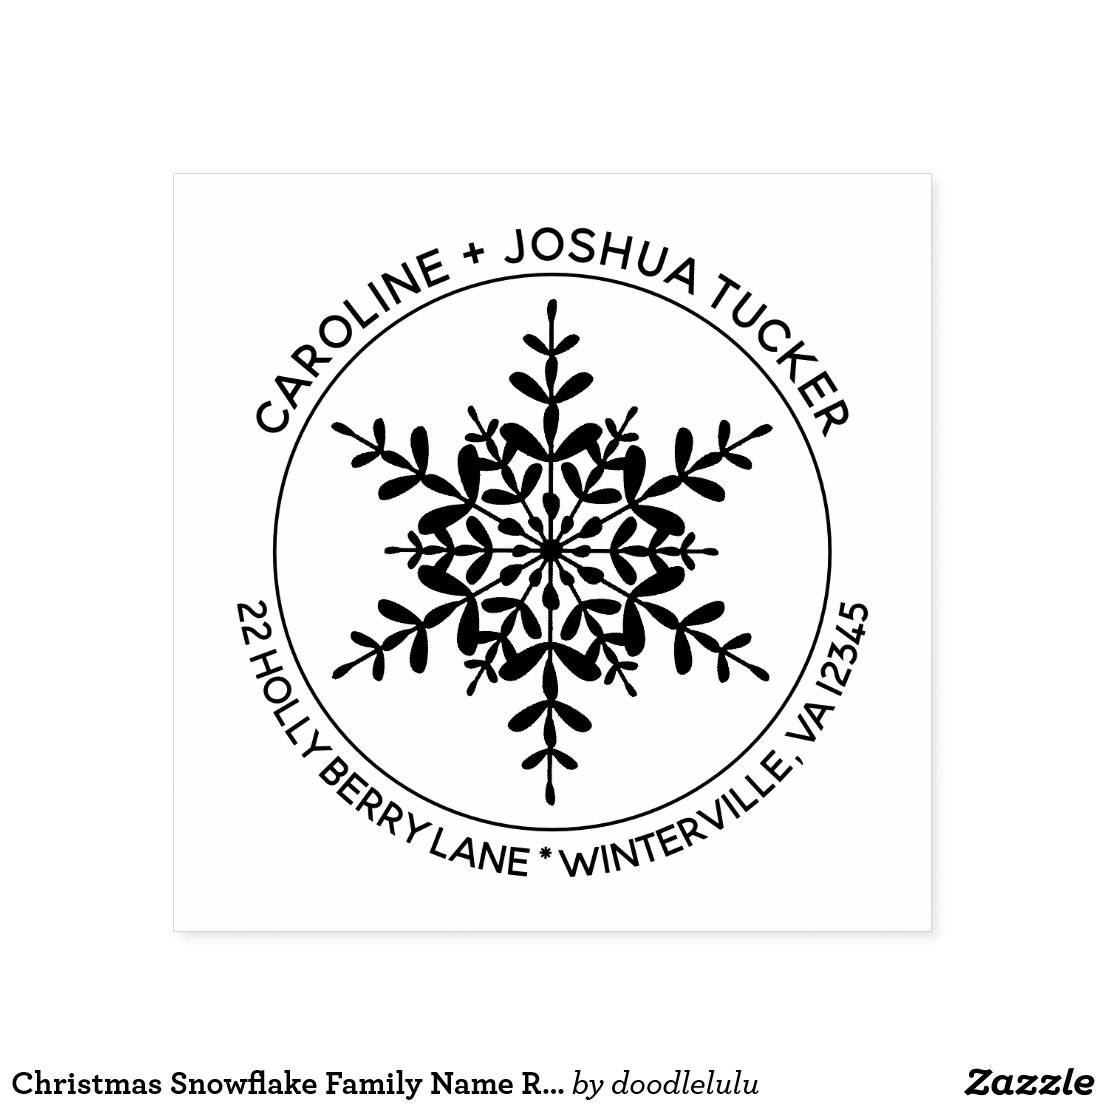 Snowflake Family Name Christmas Return Address Self-inking Stamp